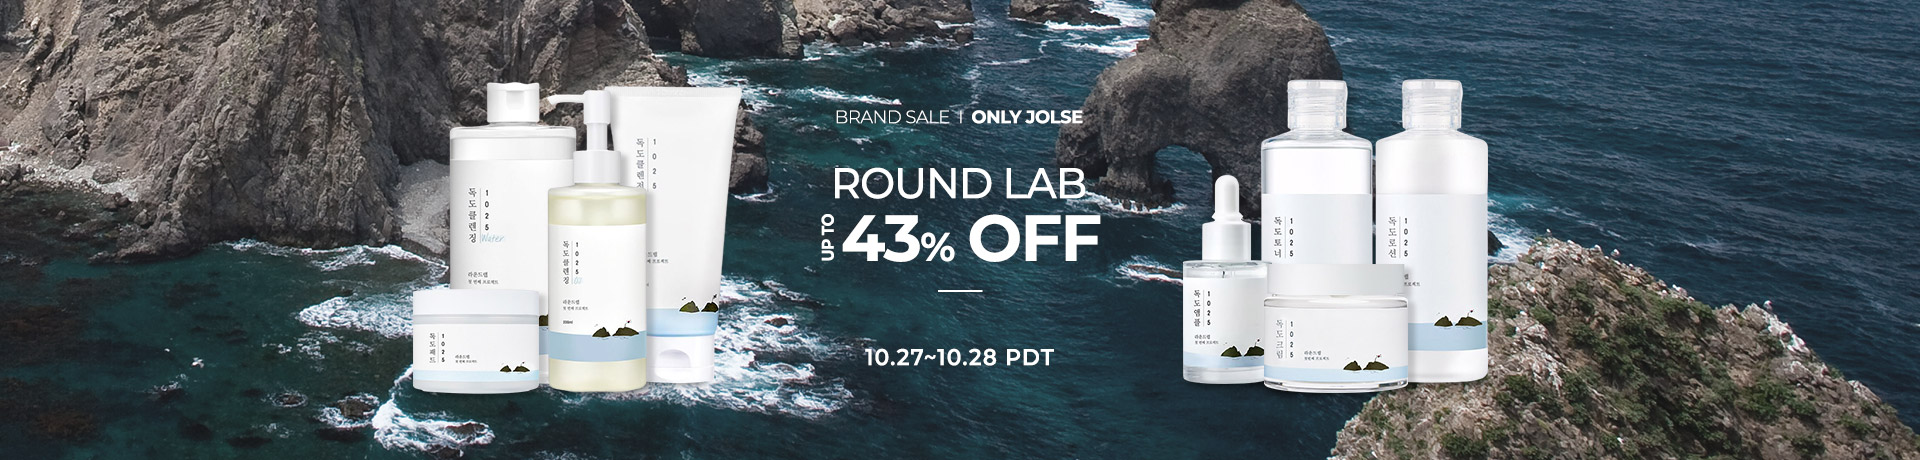 ROUND LAB Up to 00% OFF